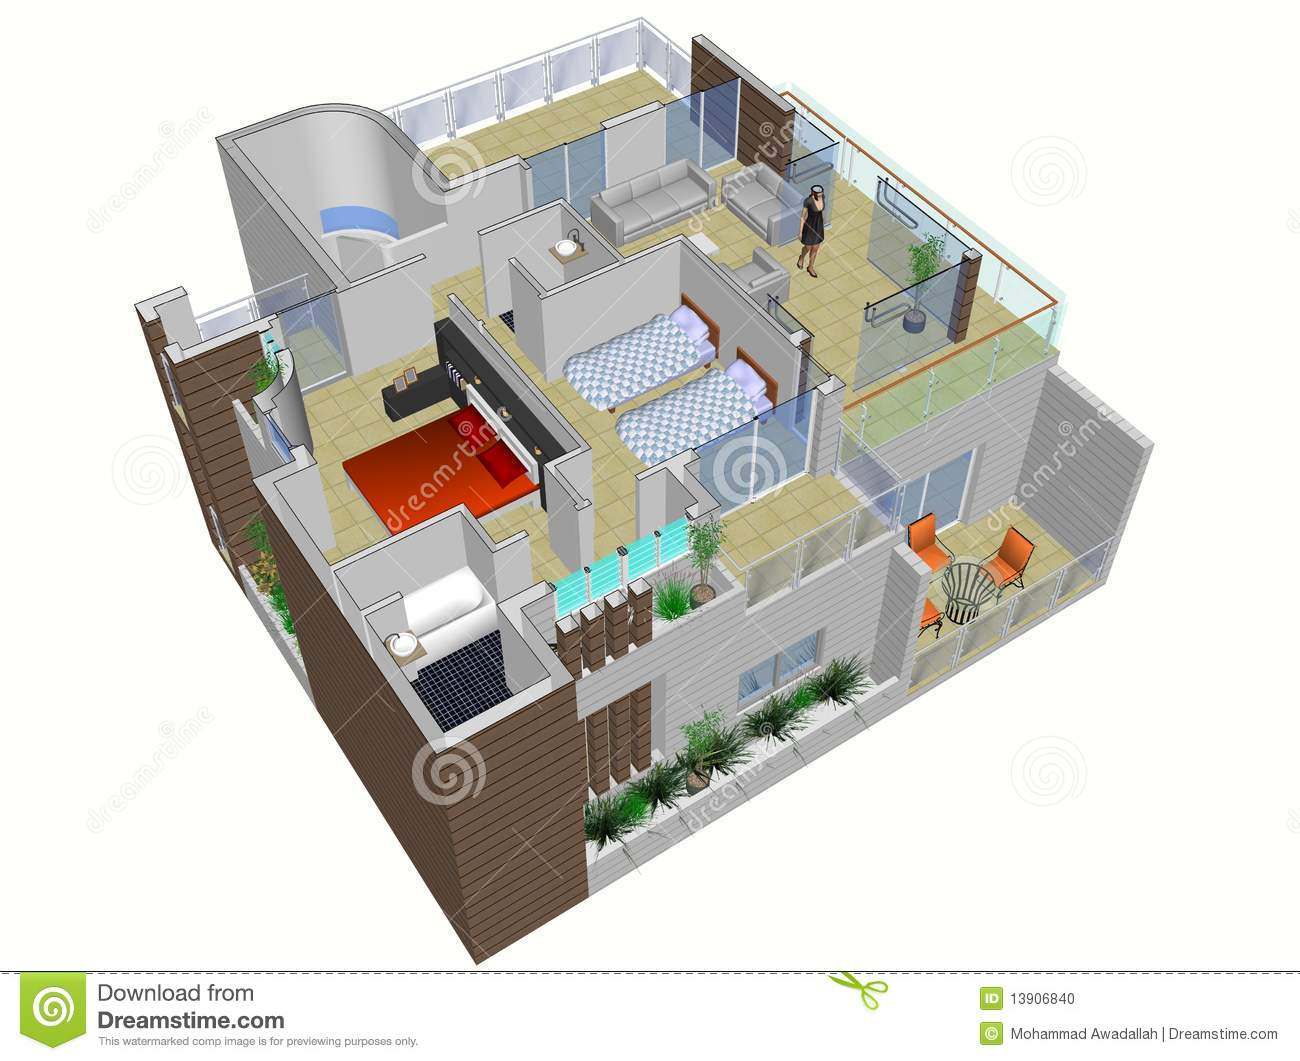 architectural plan of house - Plan Of House